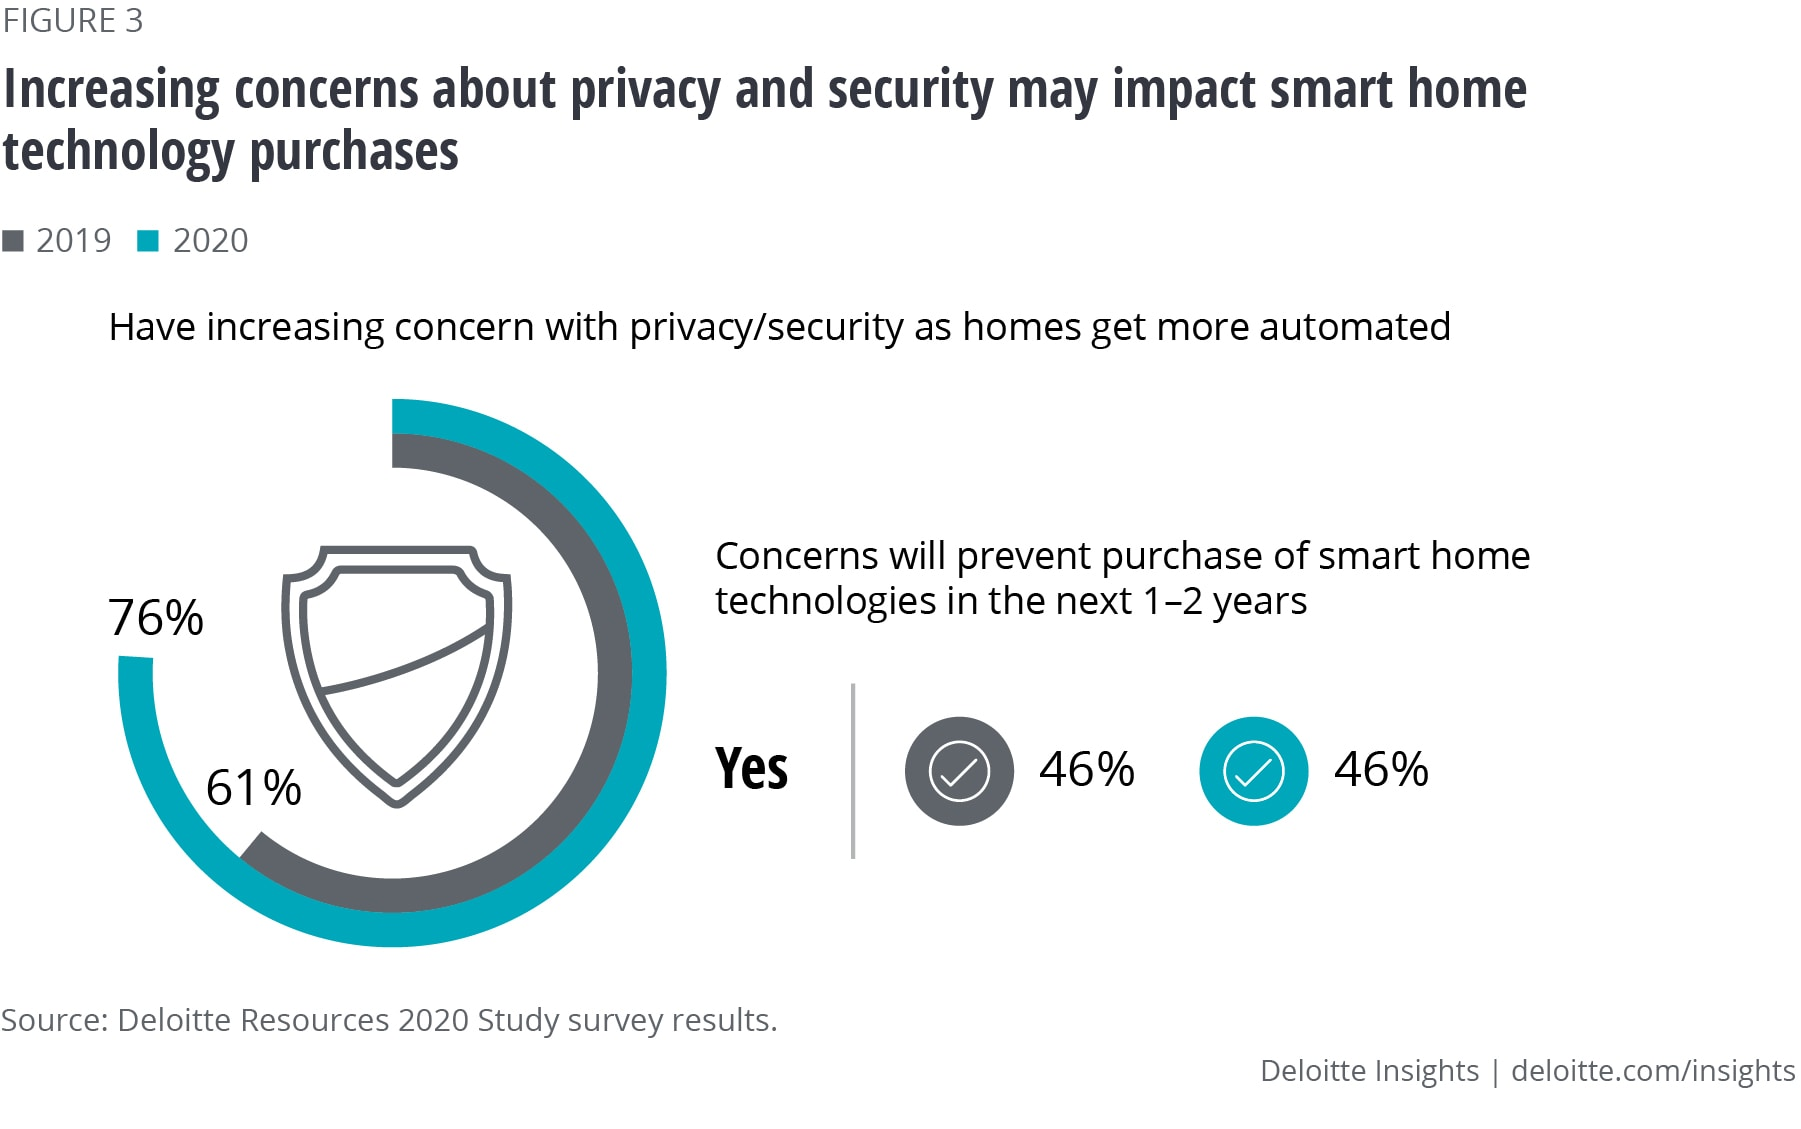 Increasing concerns about privacy and security may impact smart home technology purchases